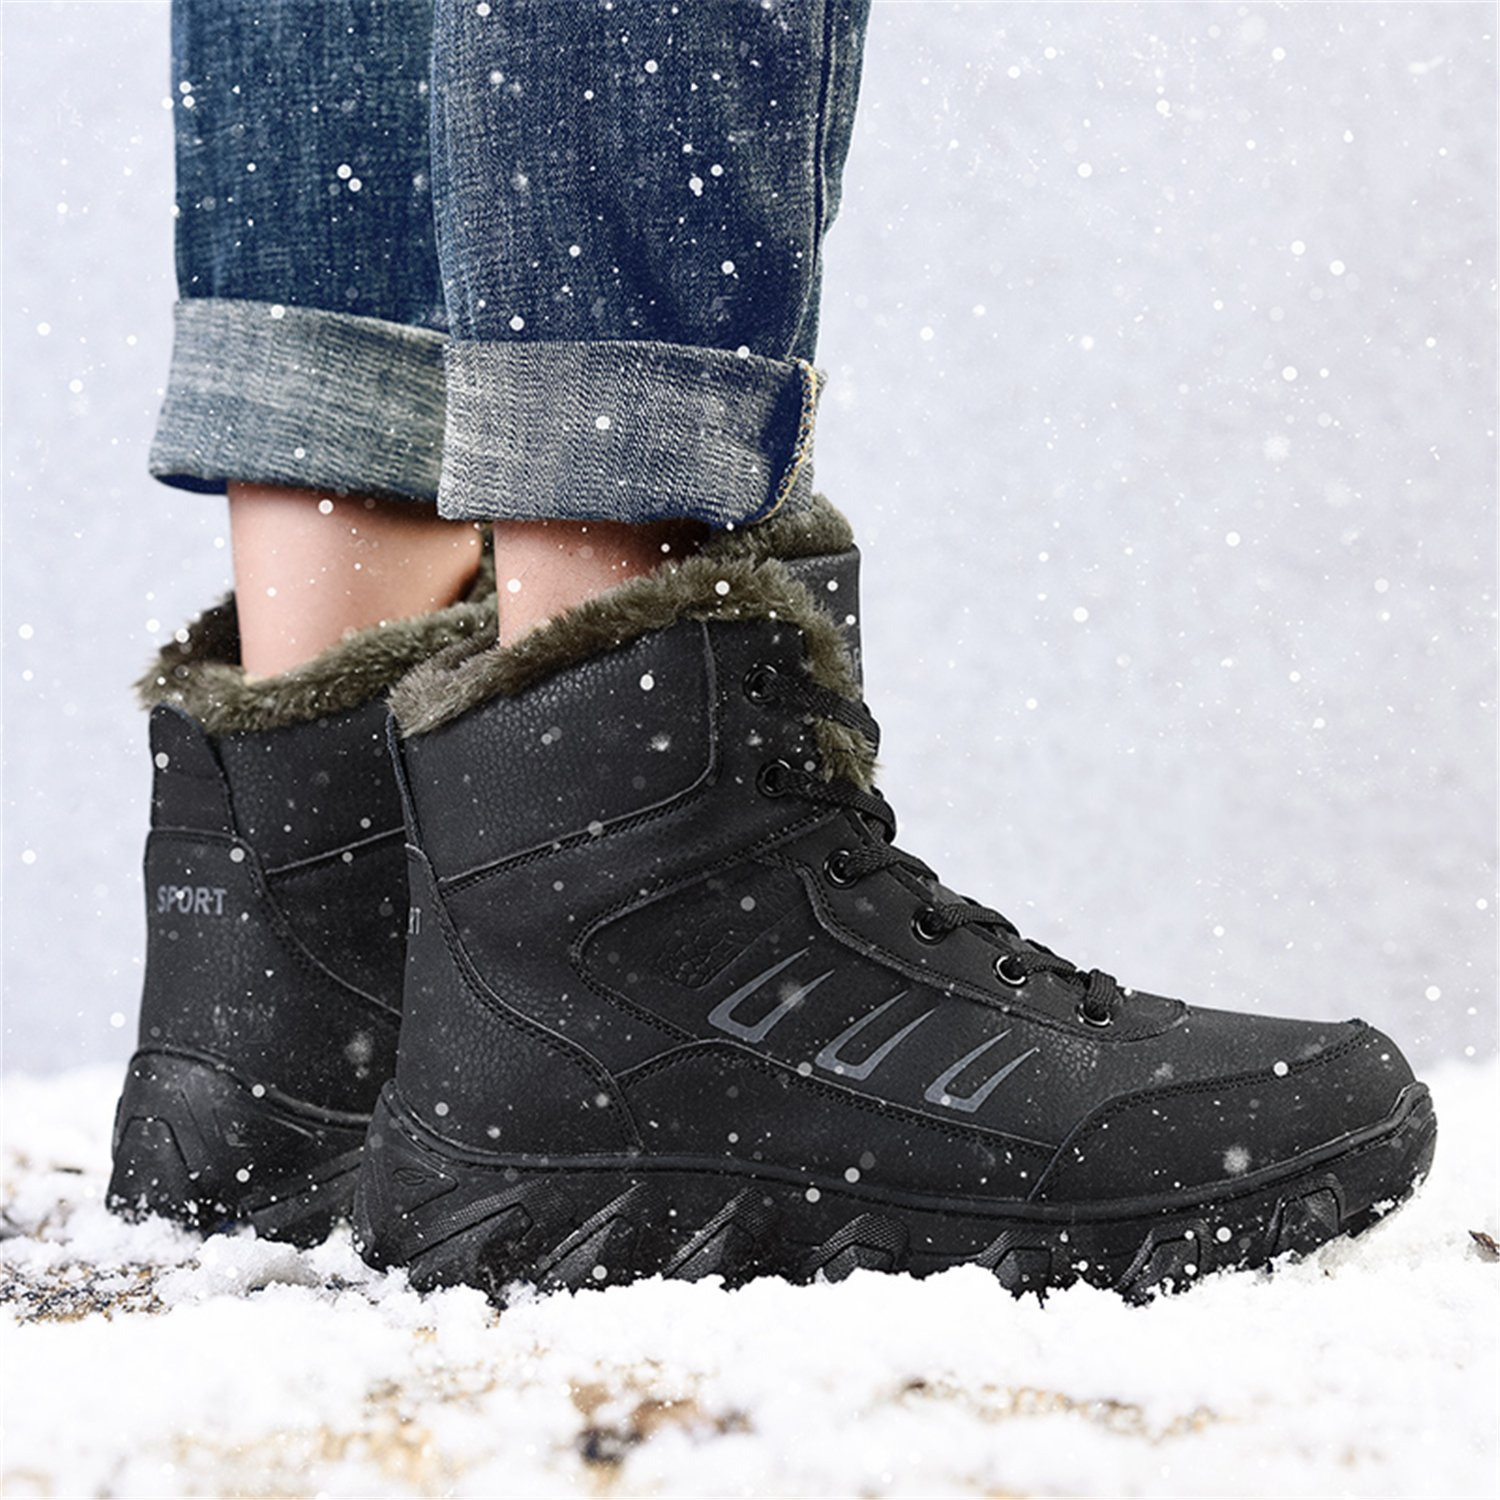 Barerun Sole Mens Leather Fur Lining an-Slip Rubber Sole Barerun Winter Snow Boots B075MBV7BL Snow Boots 4a817d